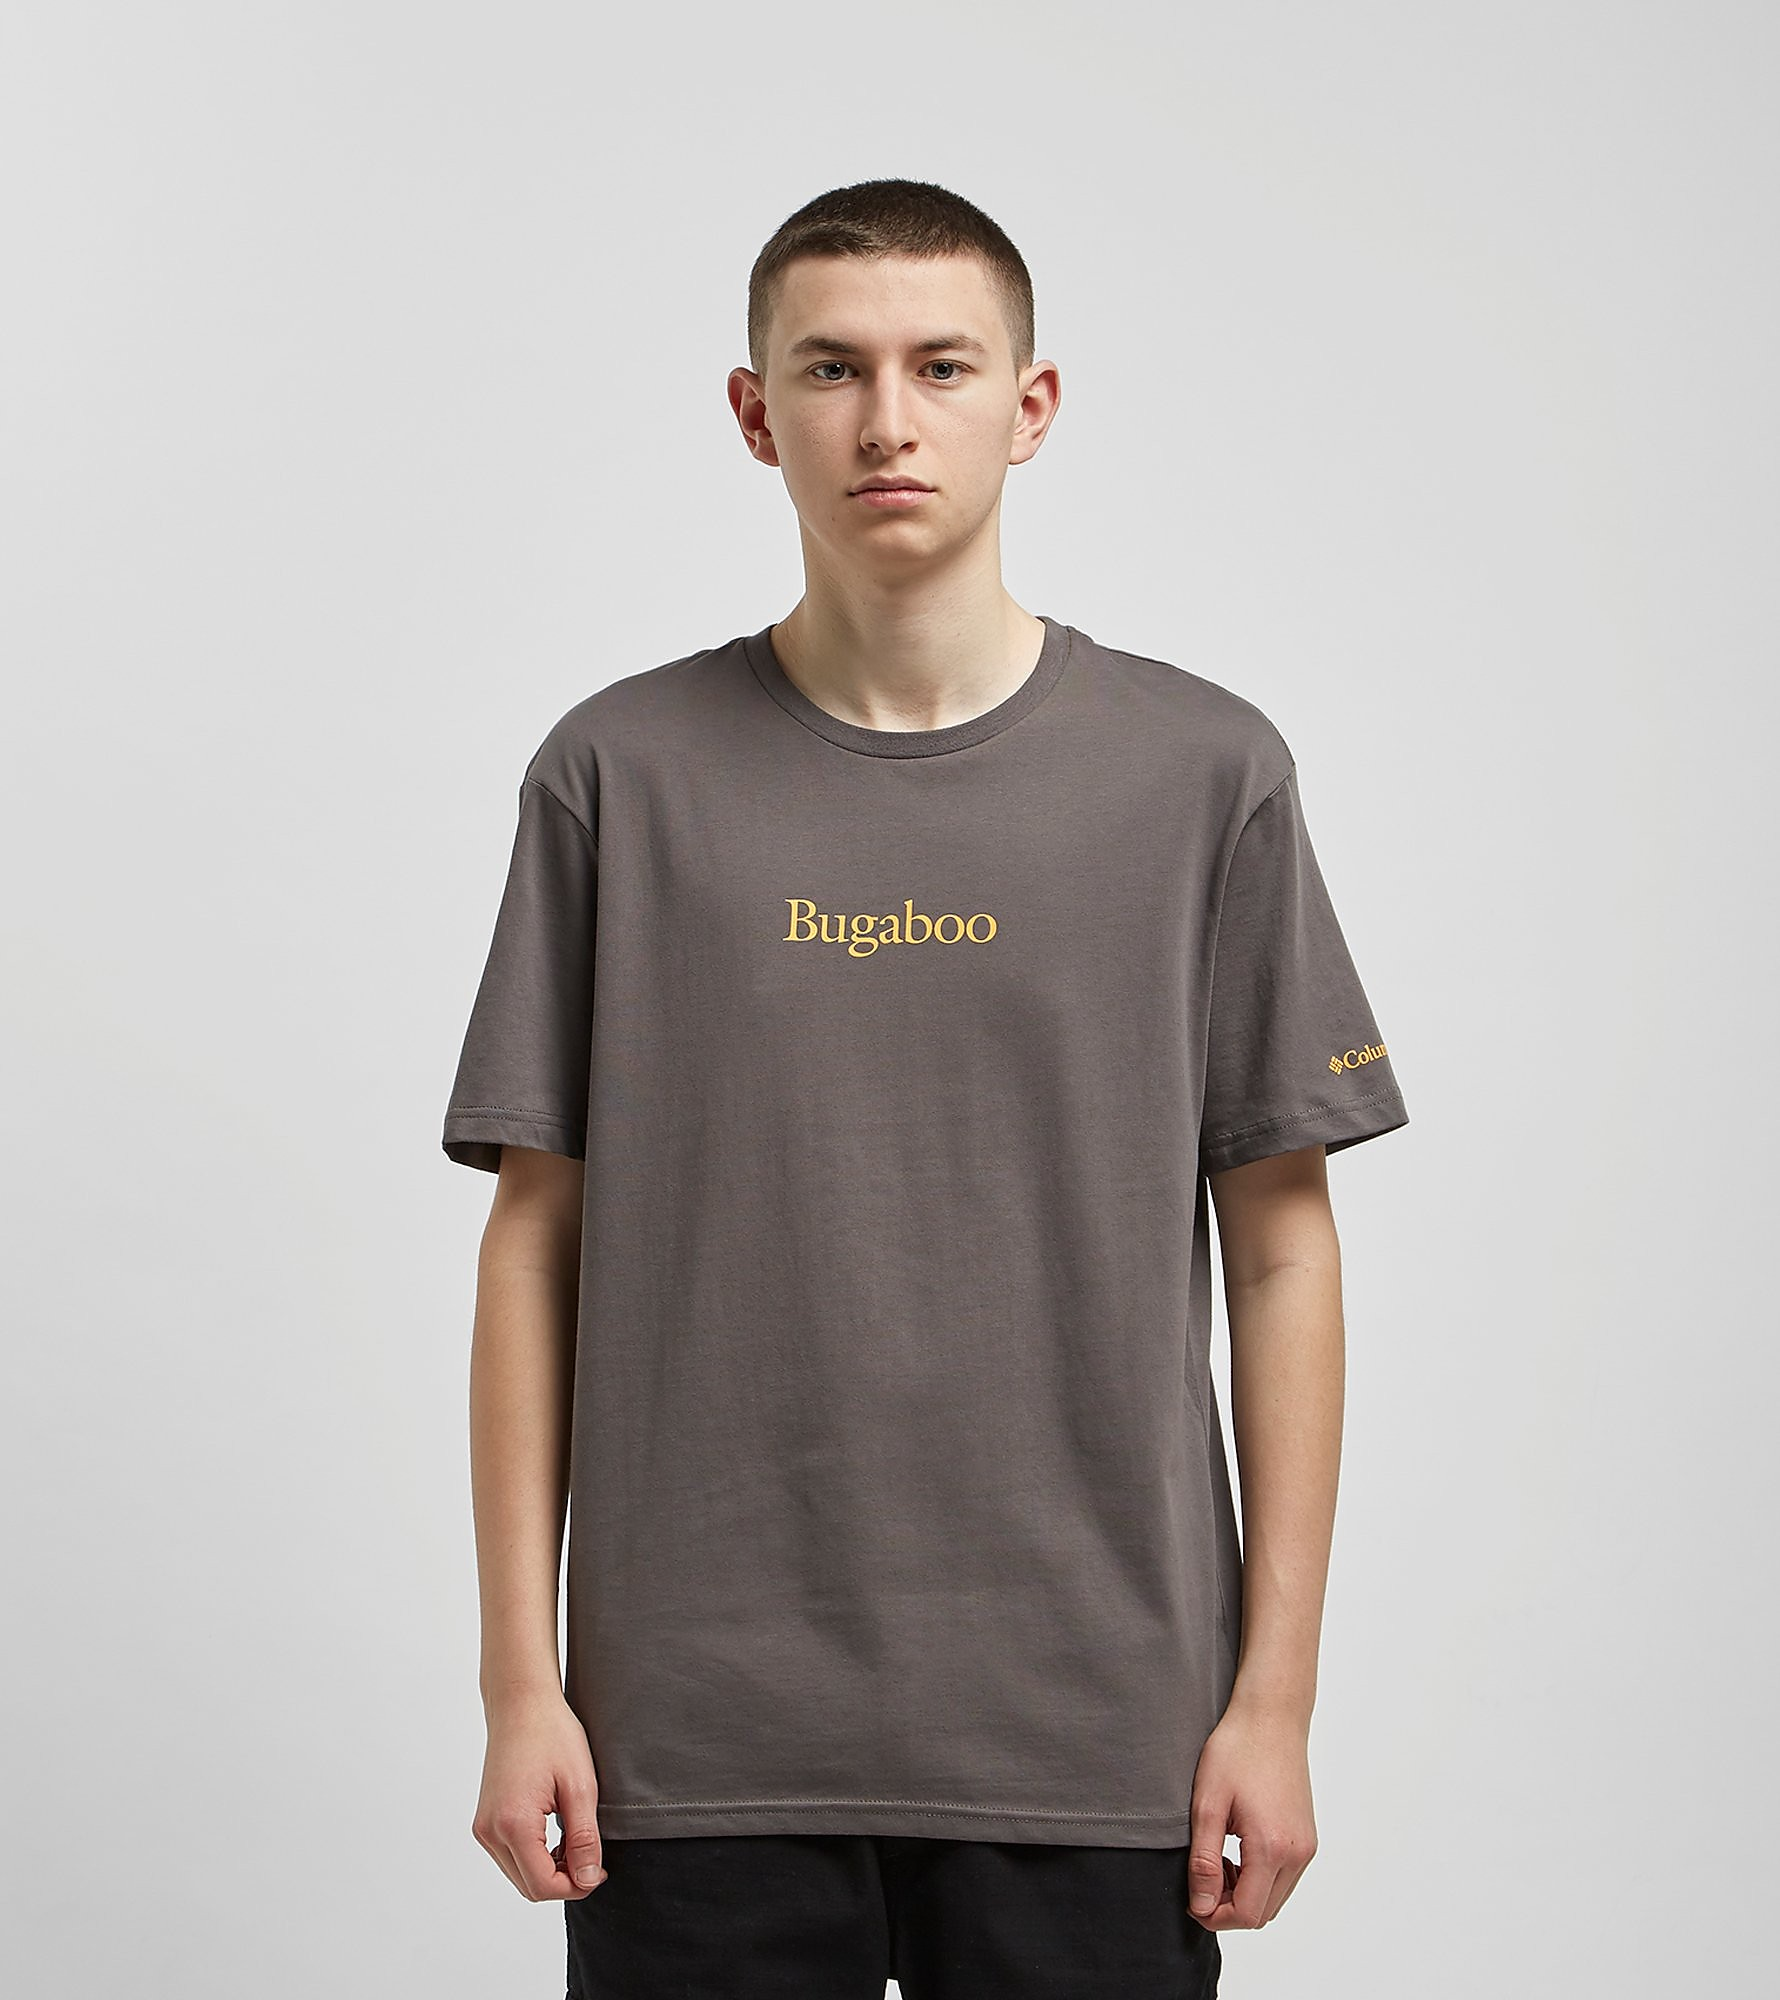 Columbia Bugaboo T-Shirt - size? Exclusive